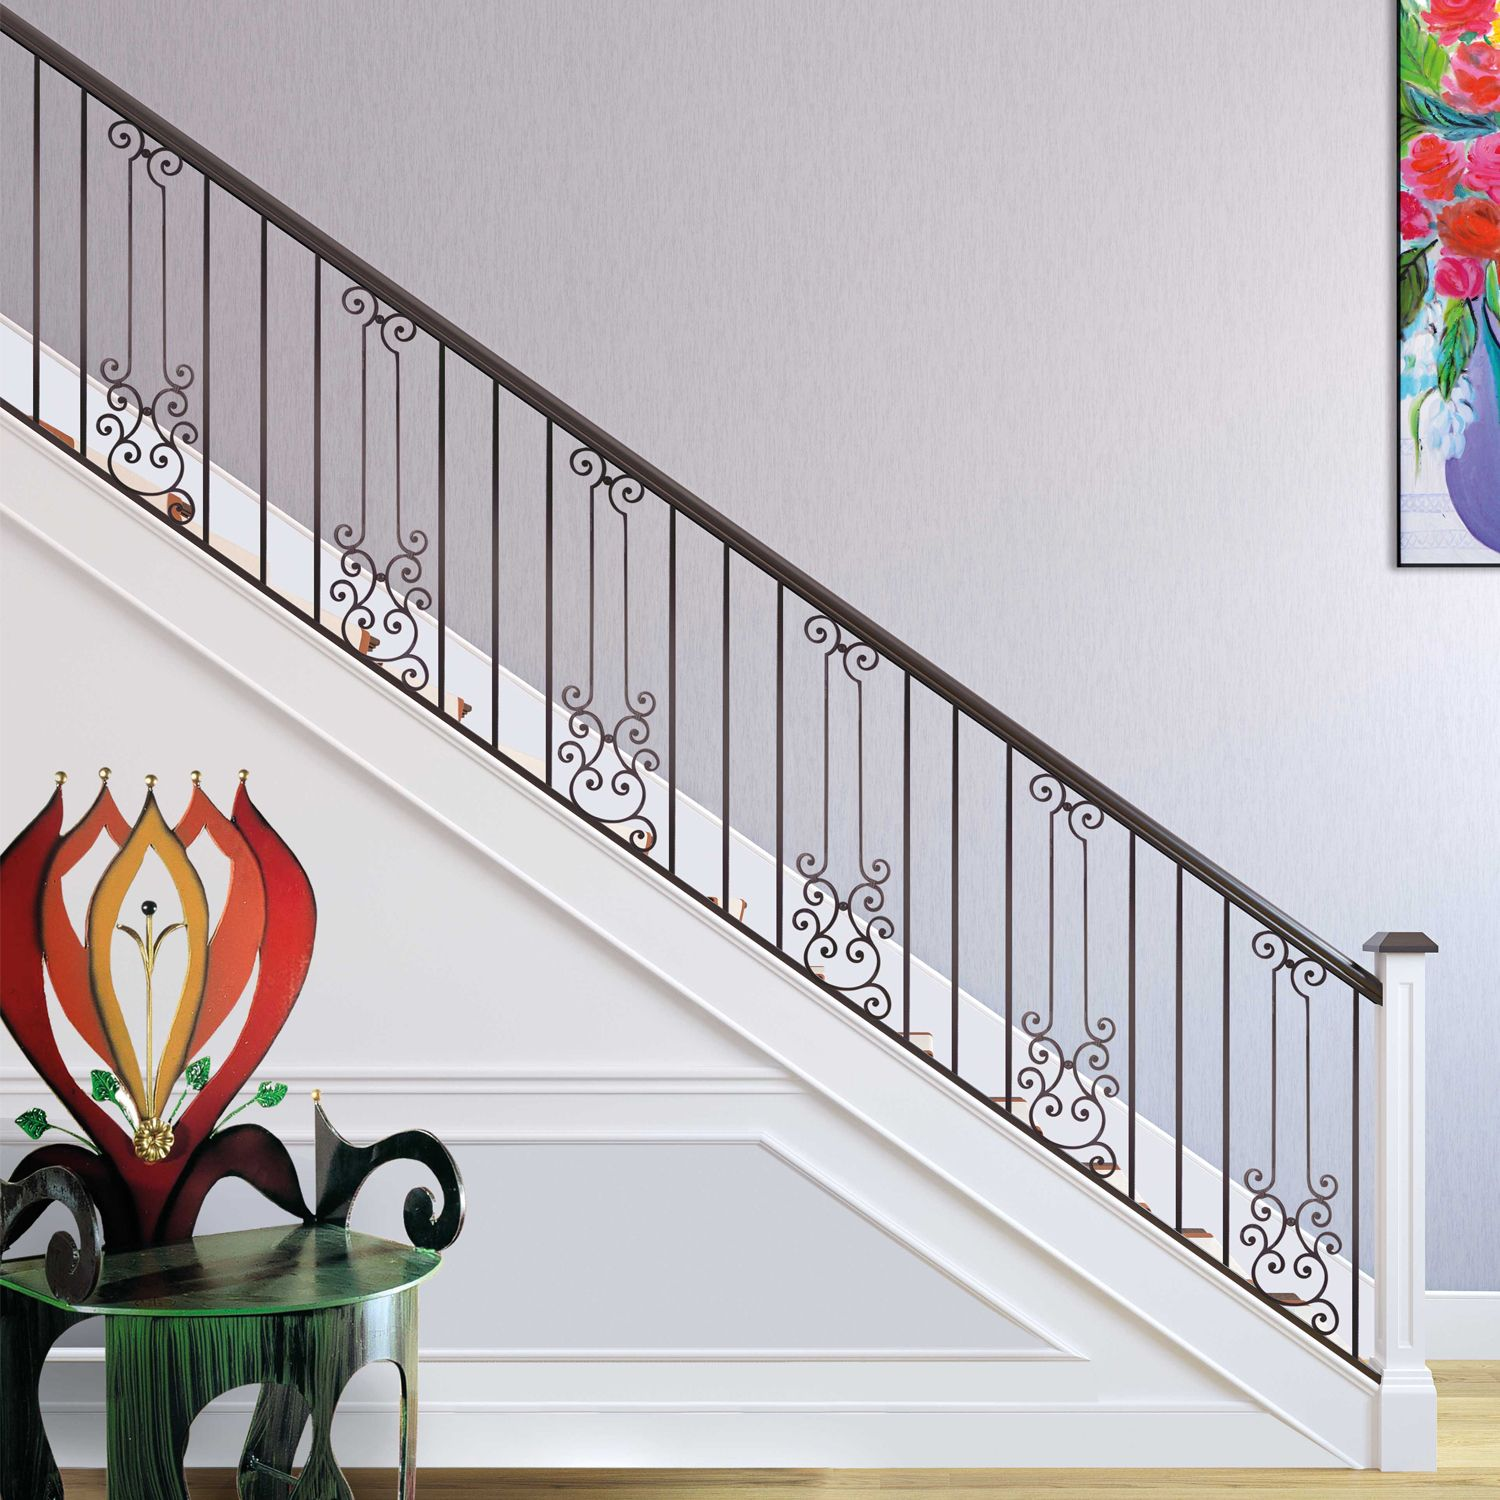 Our Wroughtiron Gonzato Design Panels Give Stairs And Railings That Classic Oldworld Look Railing Design Wrought Iron